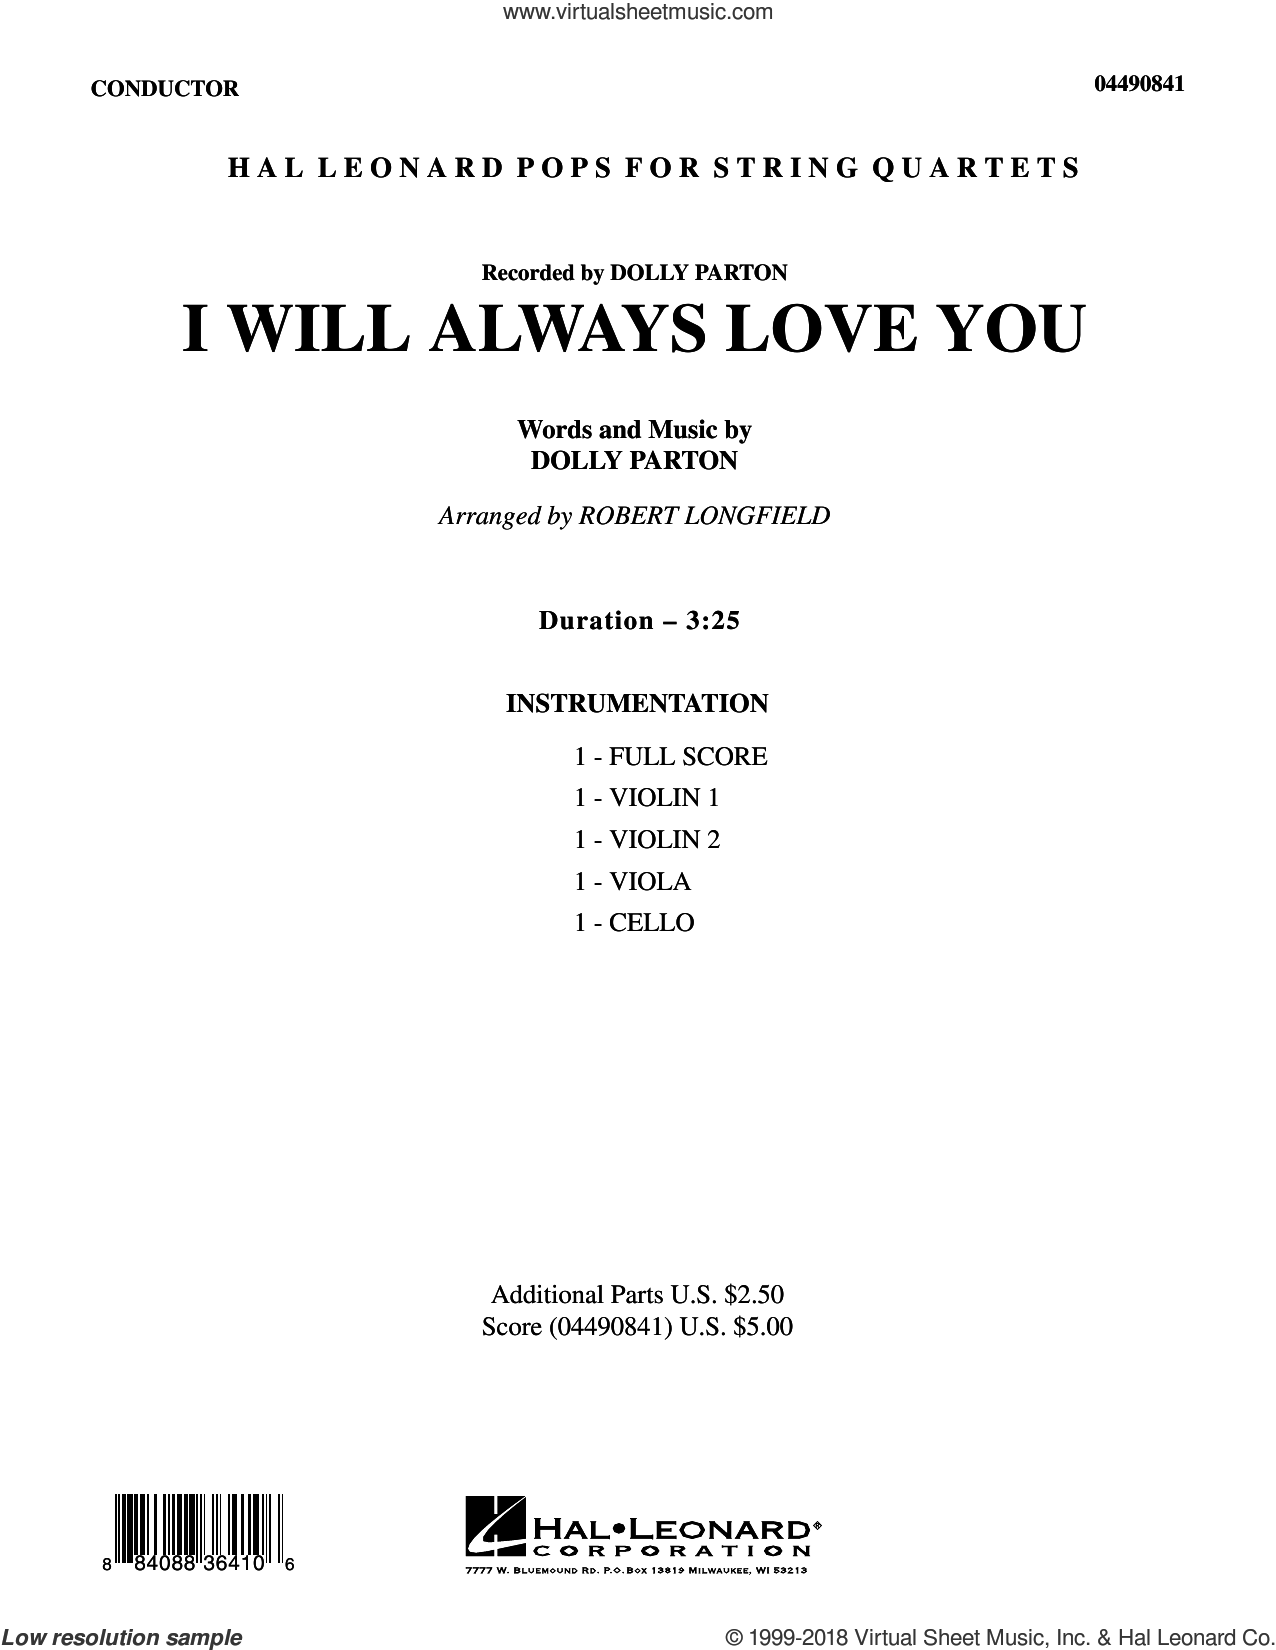 I Will Always Love You (COMPLETE) sheet music for string quartet (Strings) by Robert Longfield, Dolly Parton and Whitney Houston, intermediate orchestra